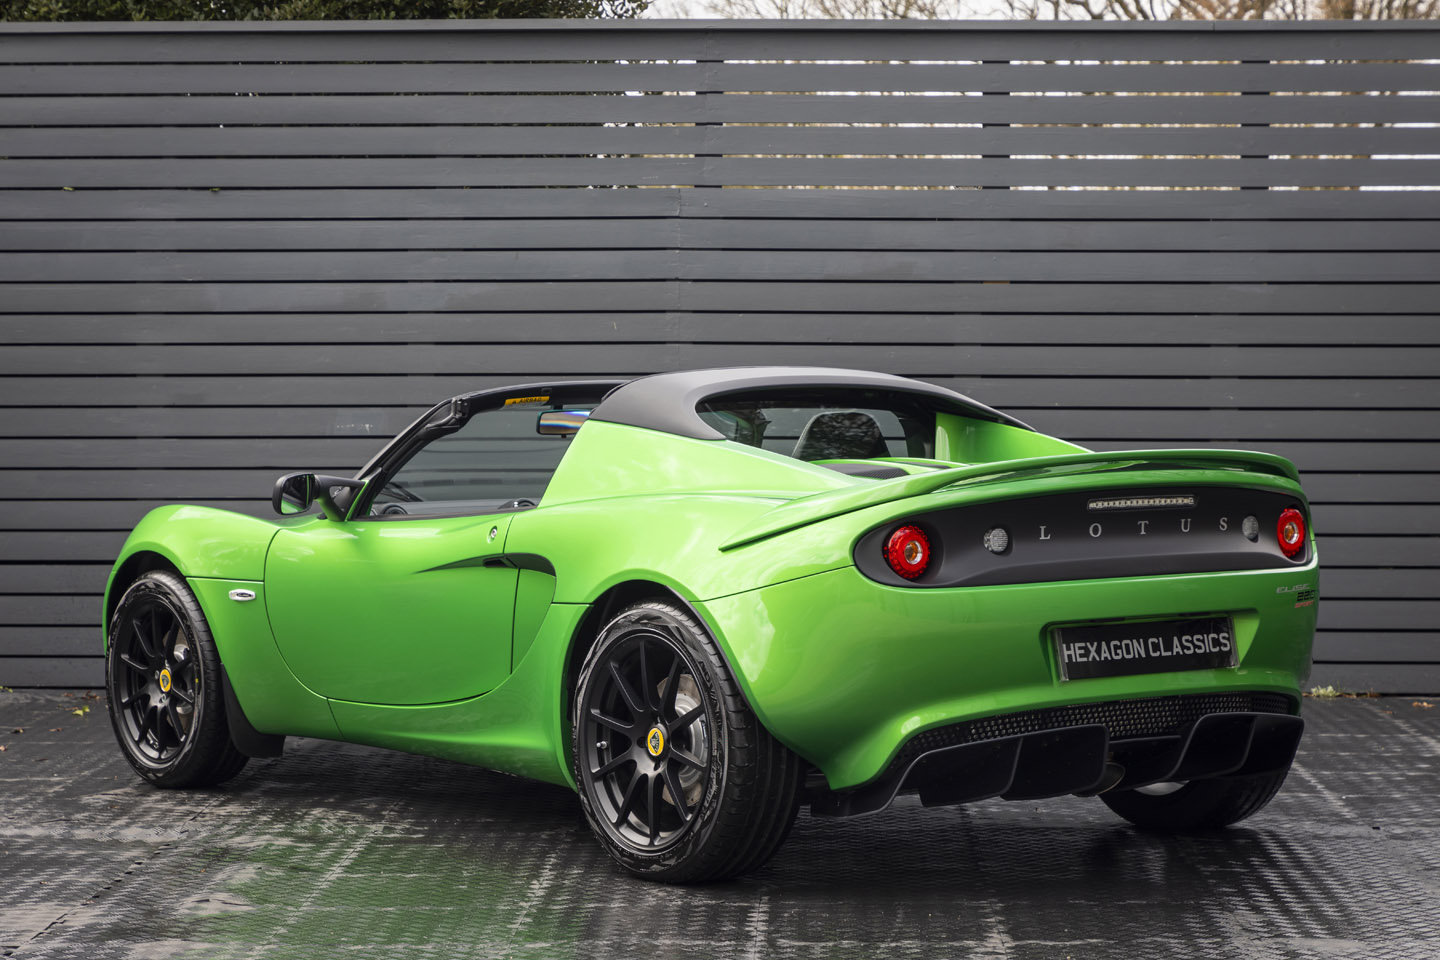 2019 LOTUS ELISE 220 SPORT SOLD (picture 2 of 6)